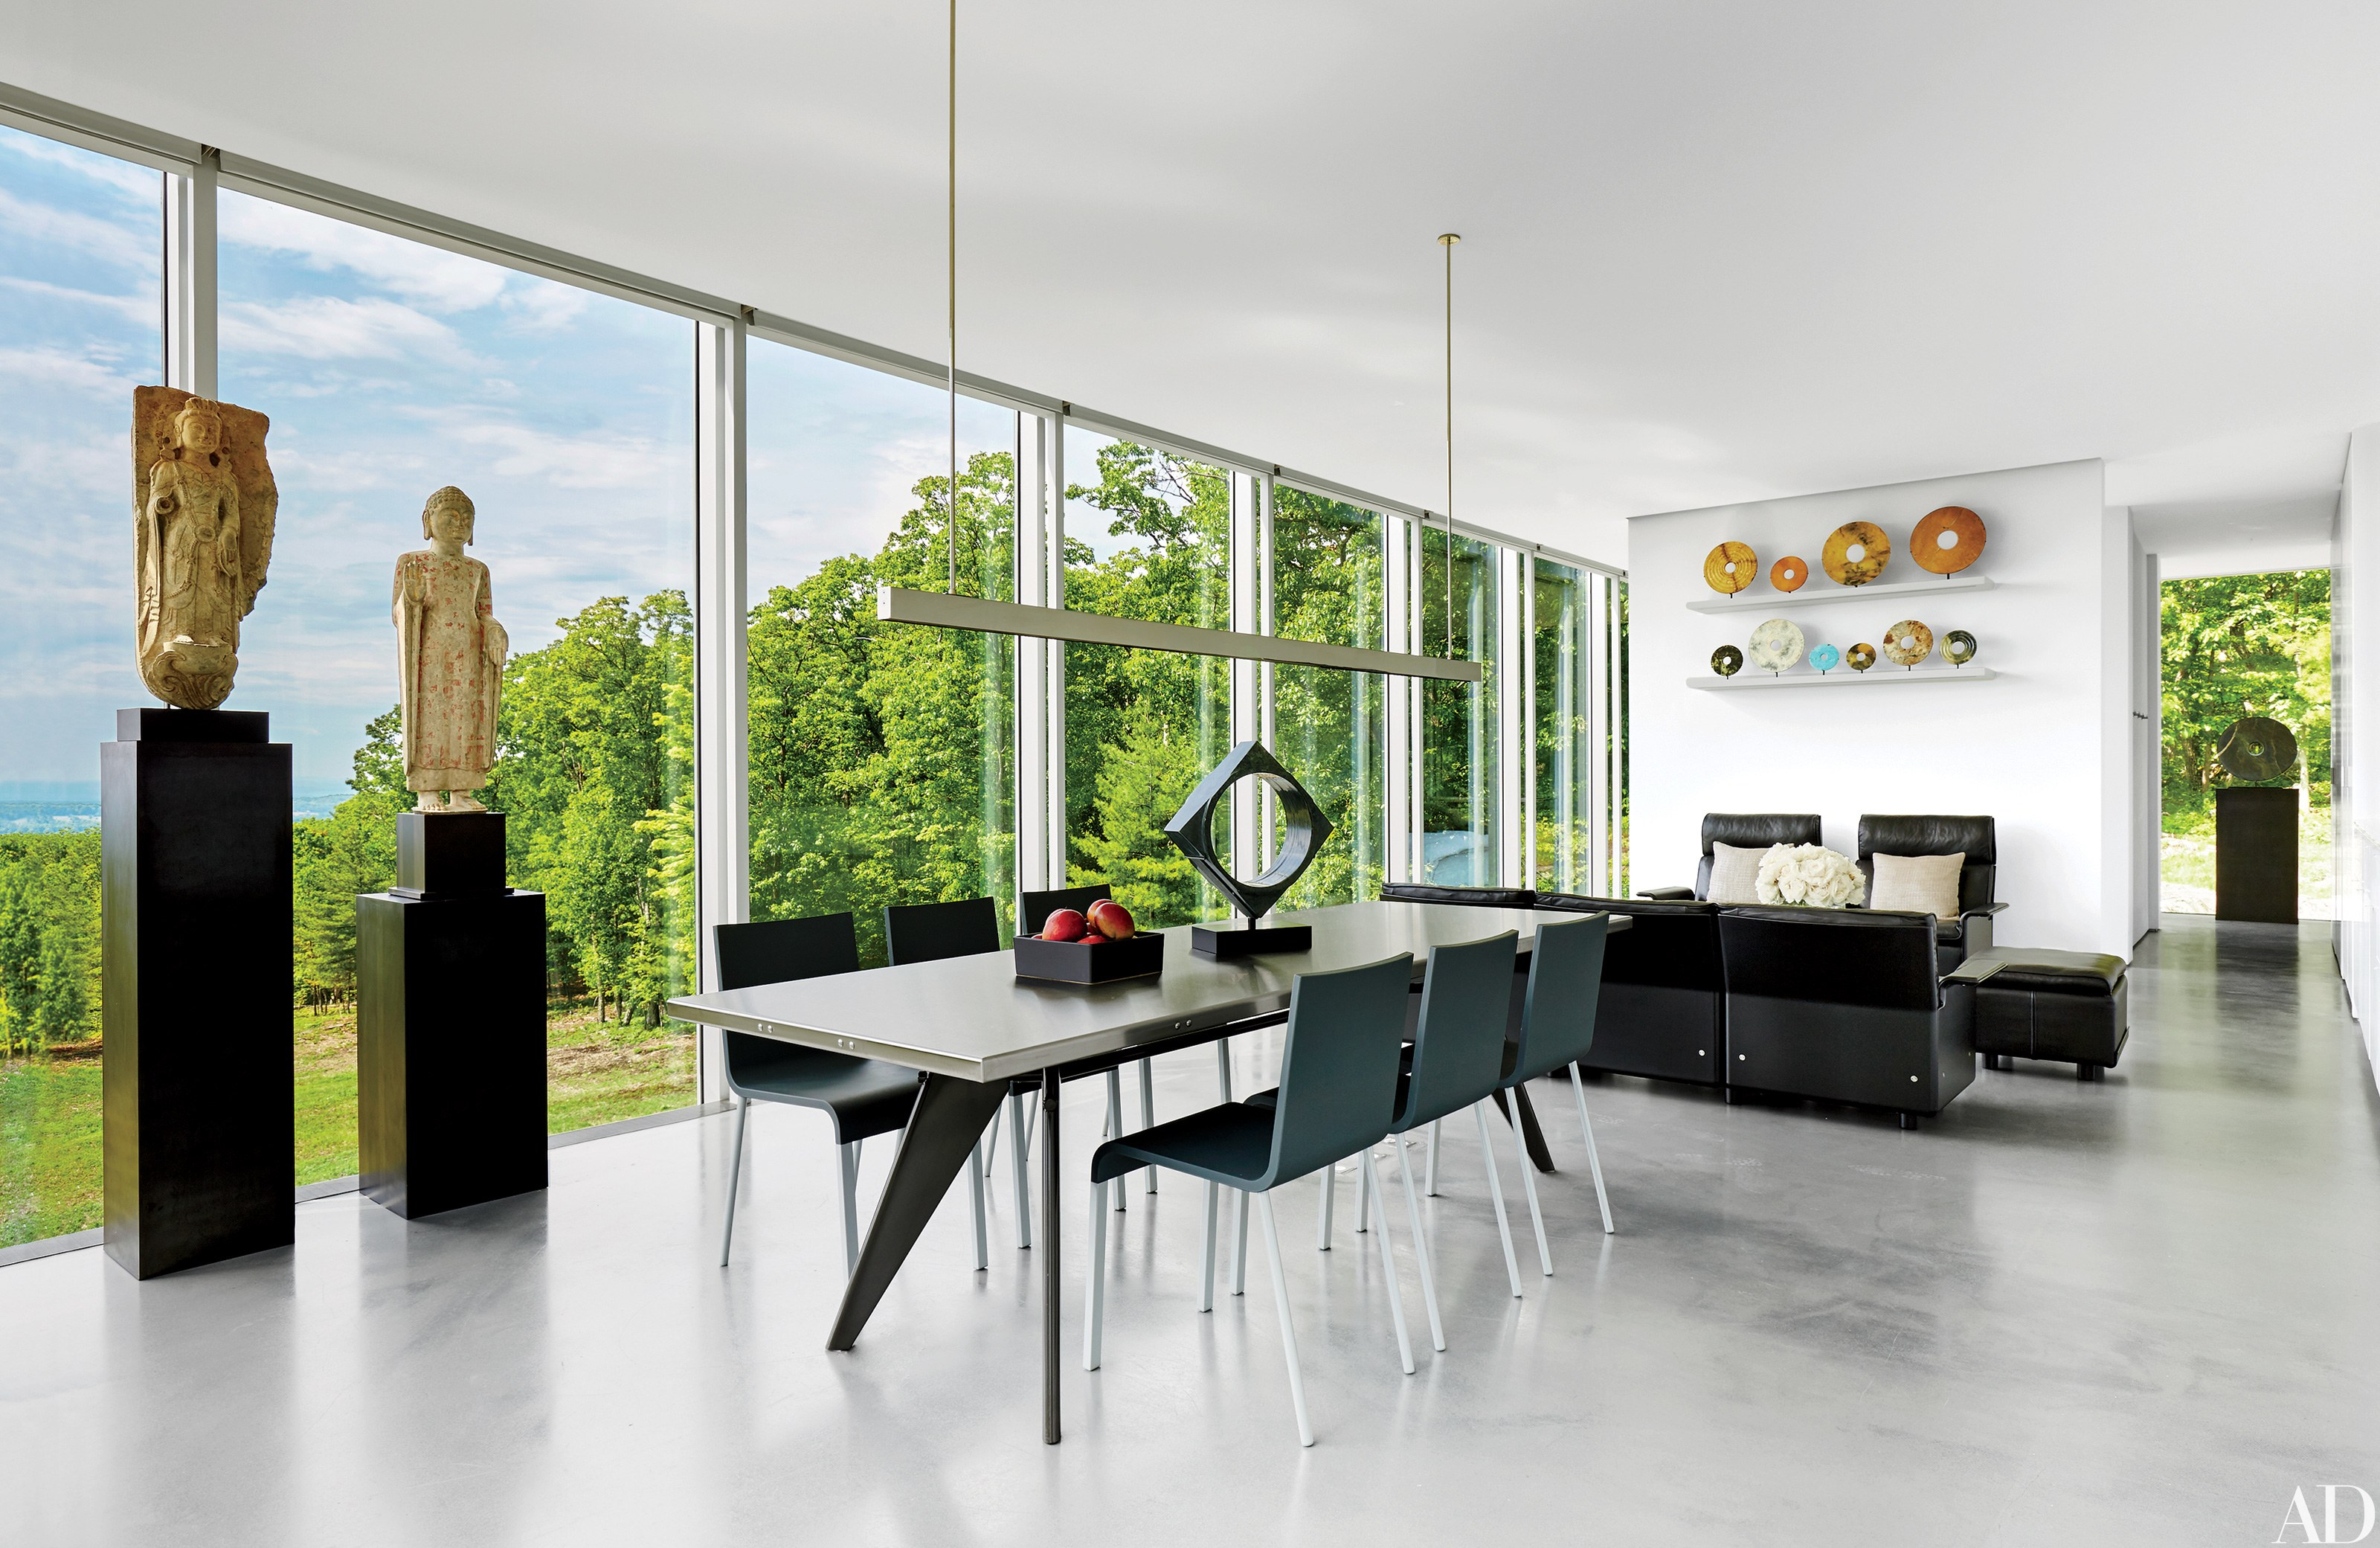 Contemporary Interior Design: 13 Striking and Sleek Rooms - Architectural  Digest